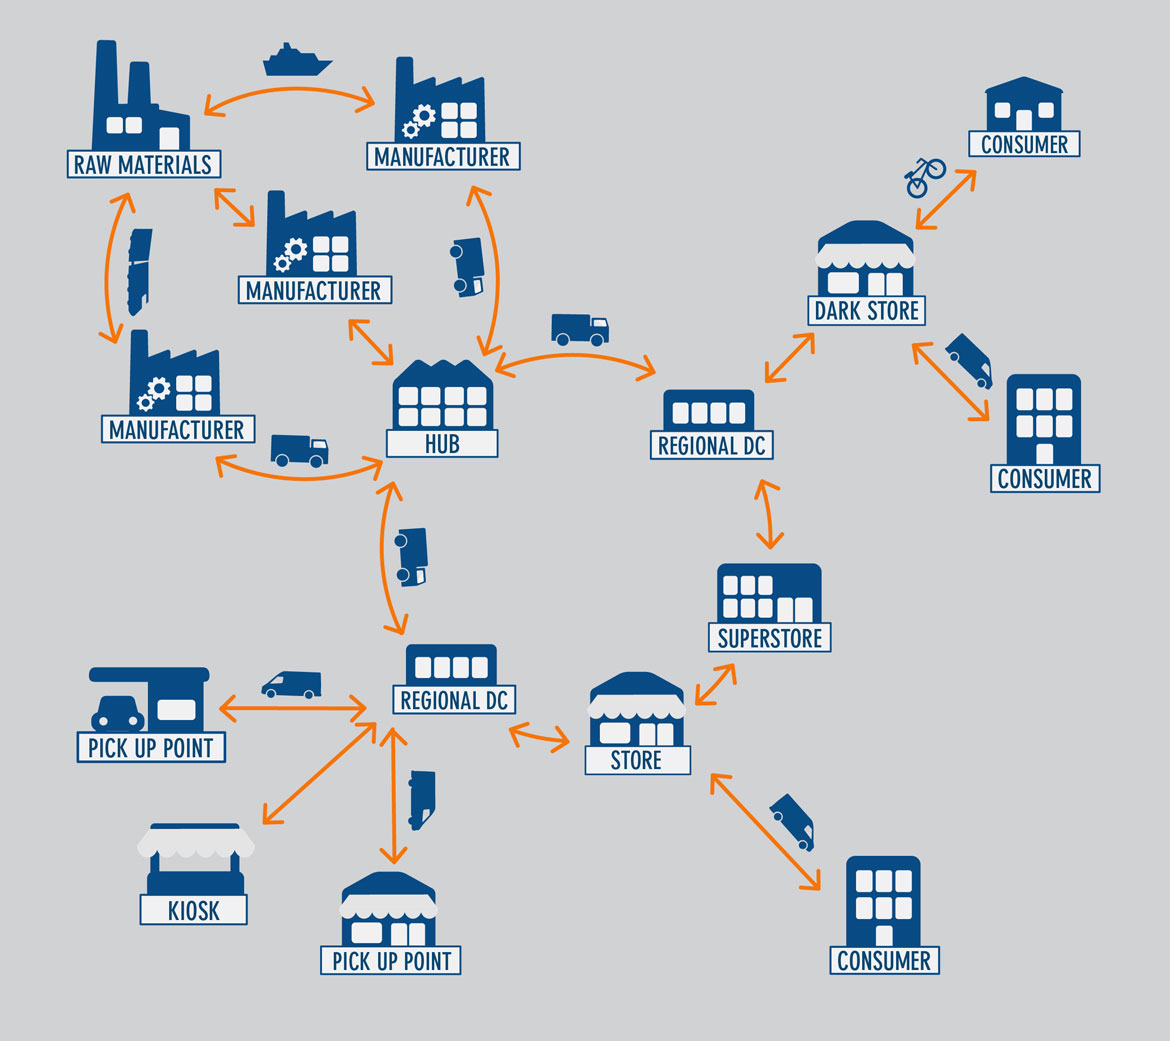 Supply chain map for a complex consumer purchase